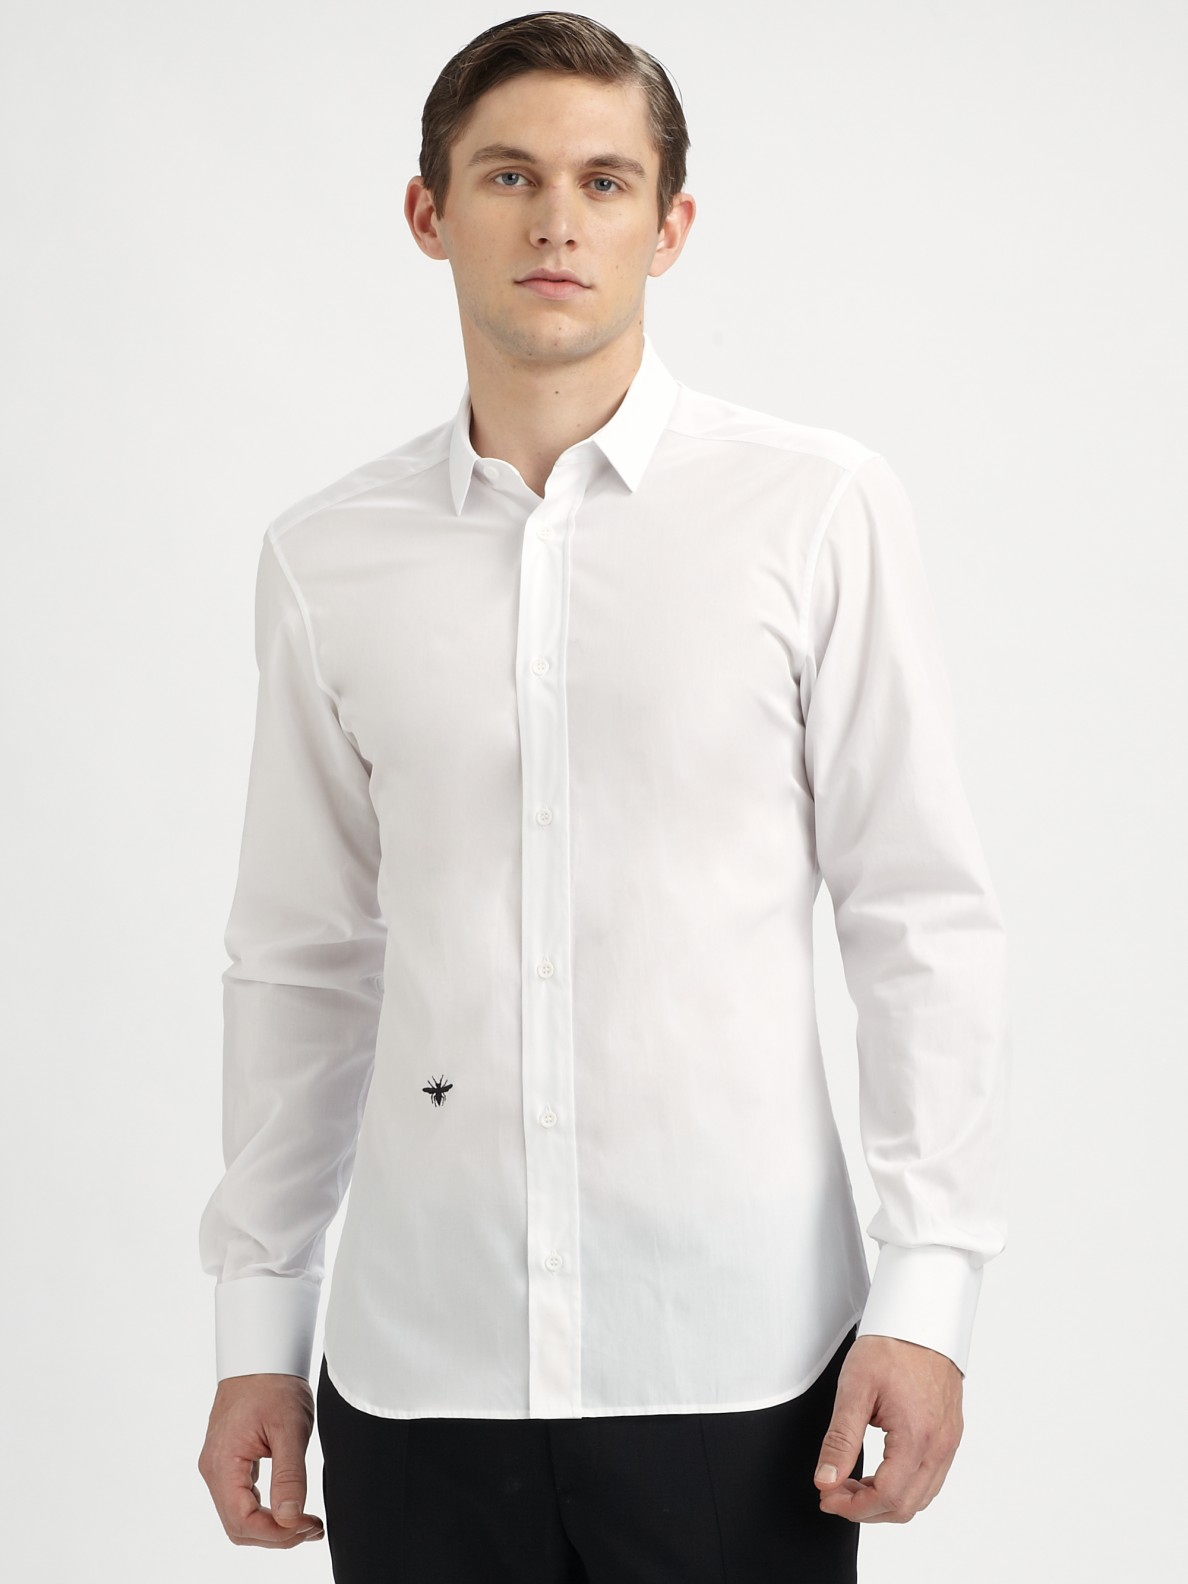 dior homme poplin dress shirt in white for men lyst